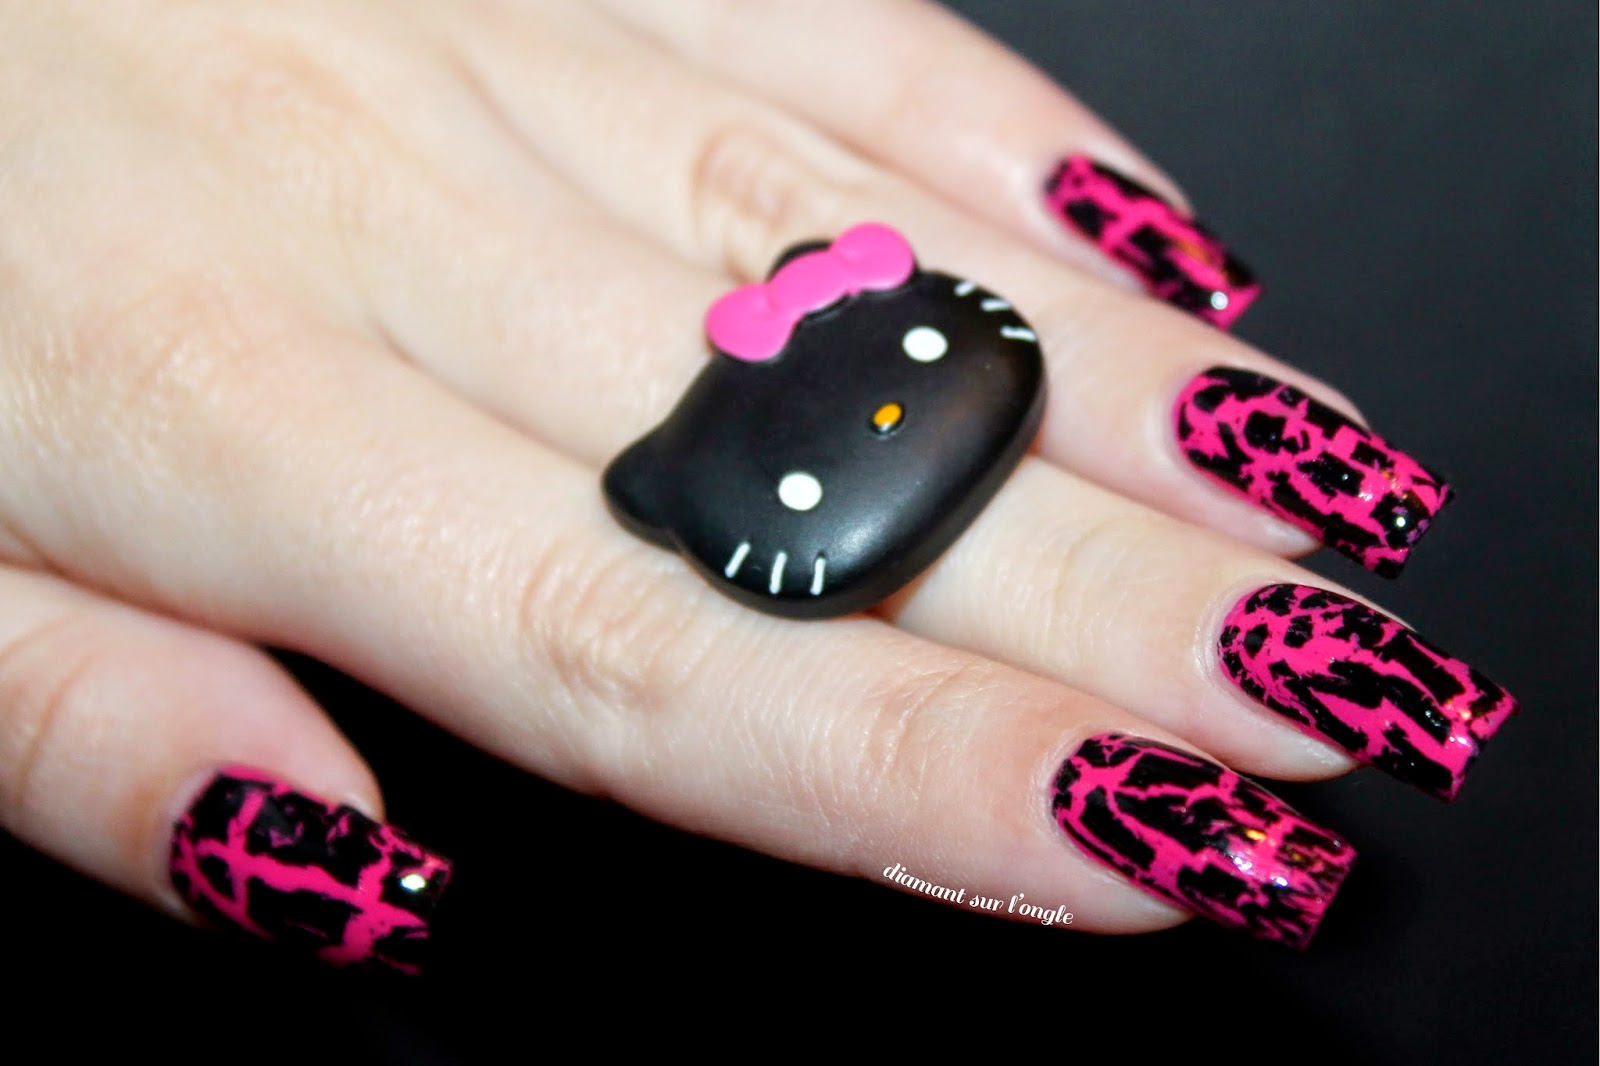 black and pink nail art done with a black shatter nail polish